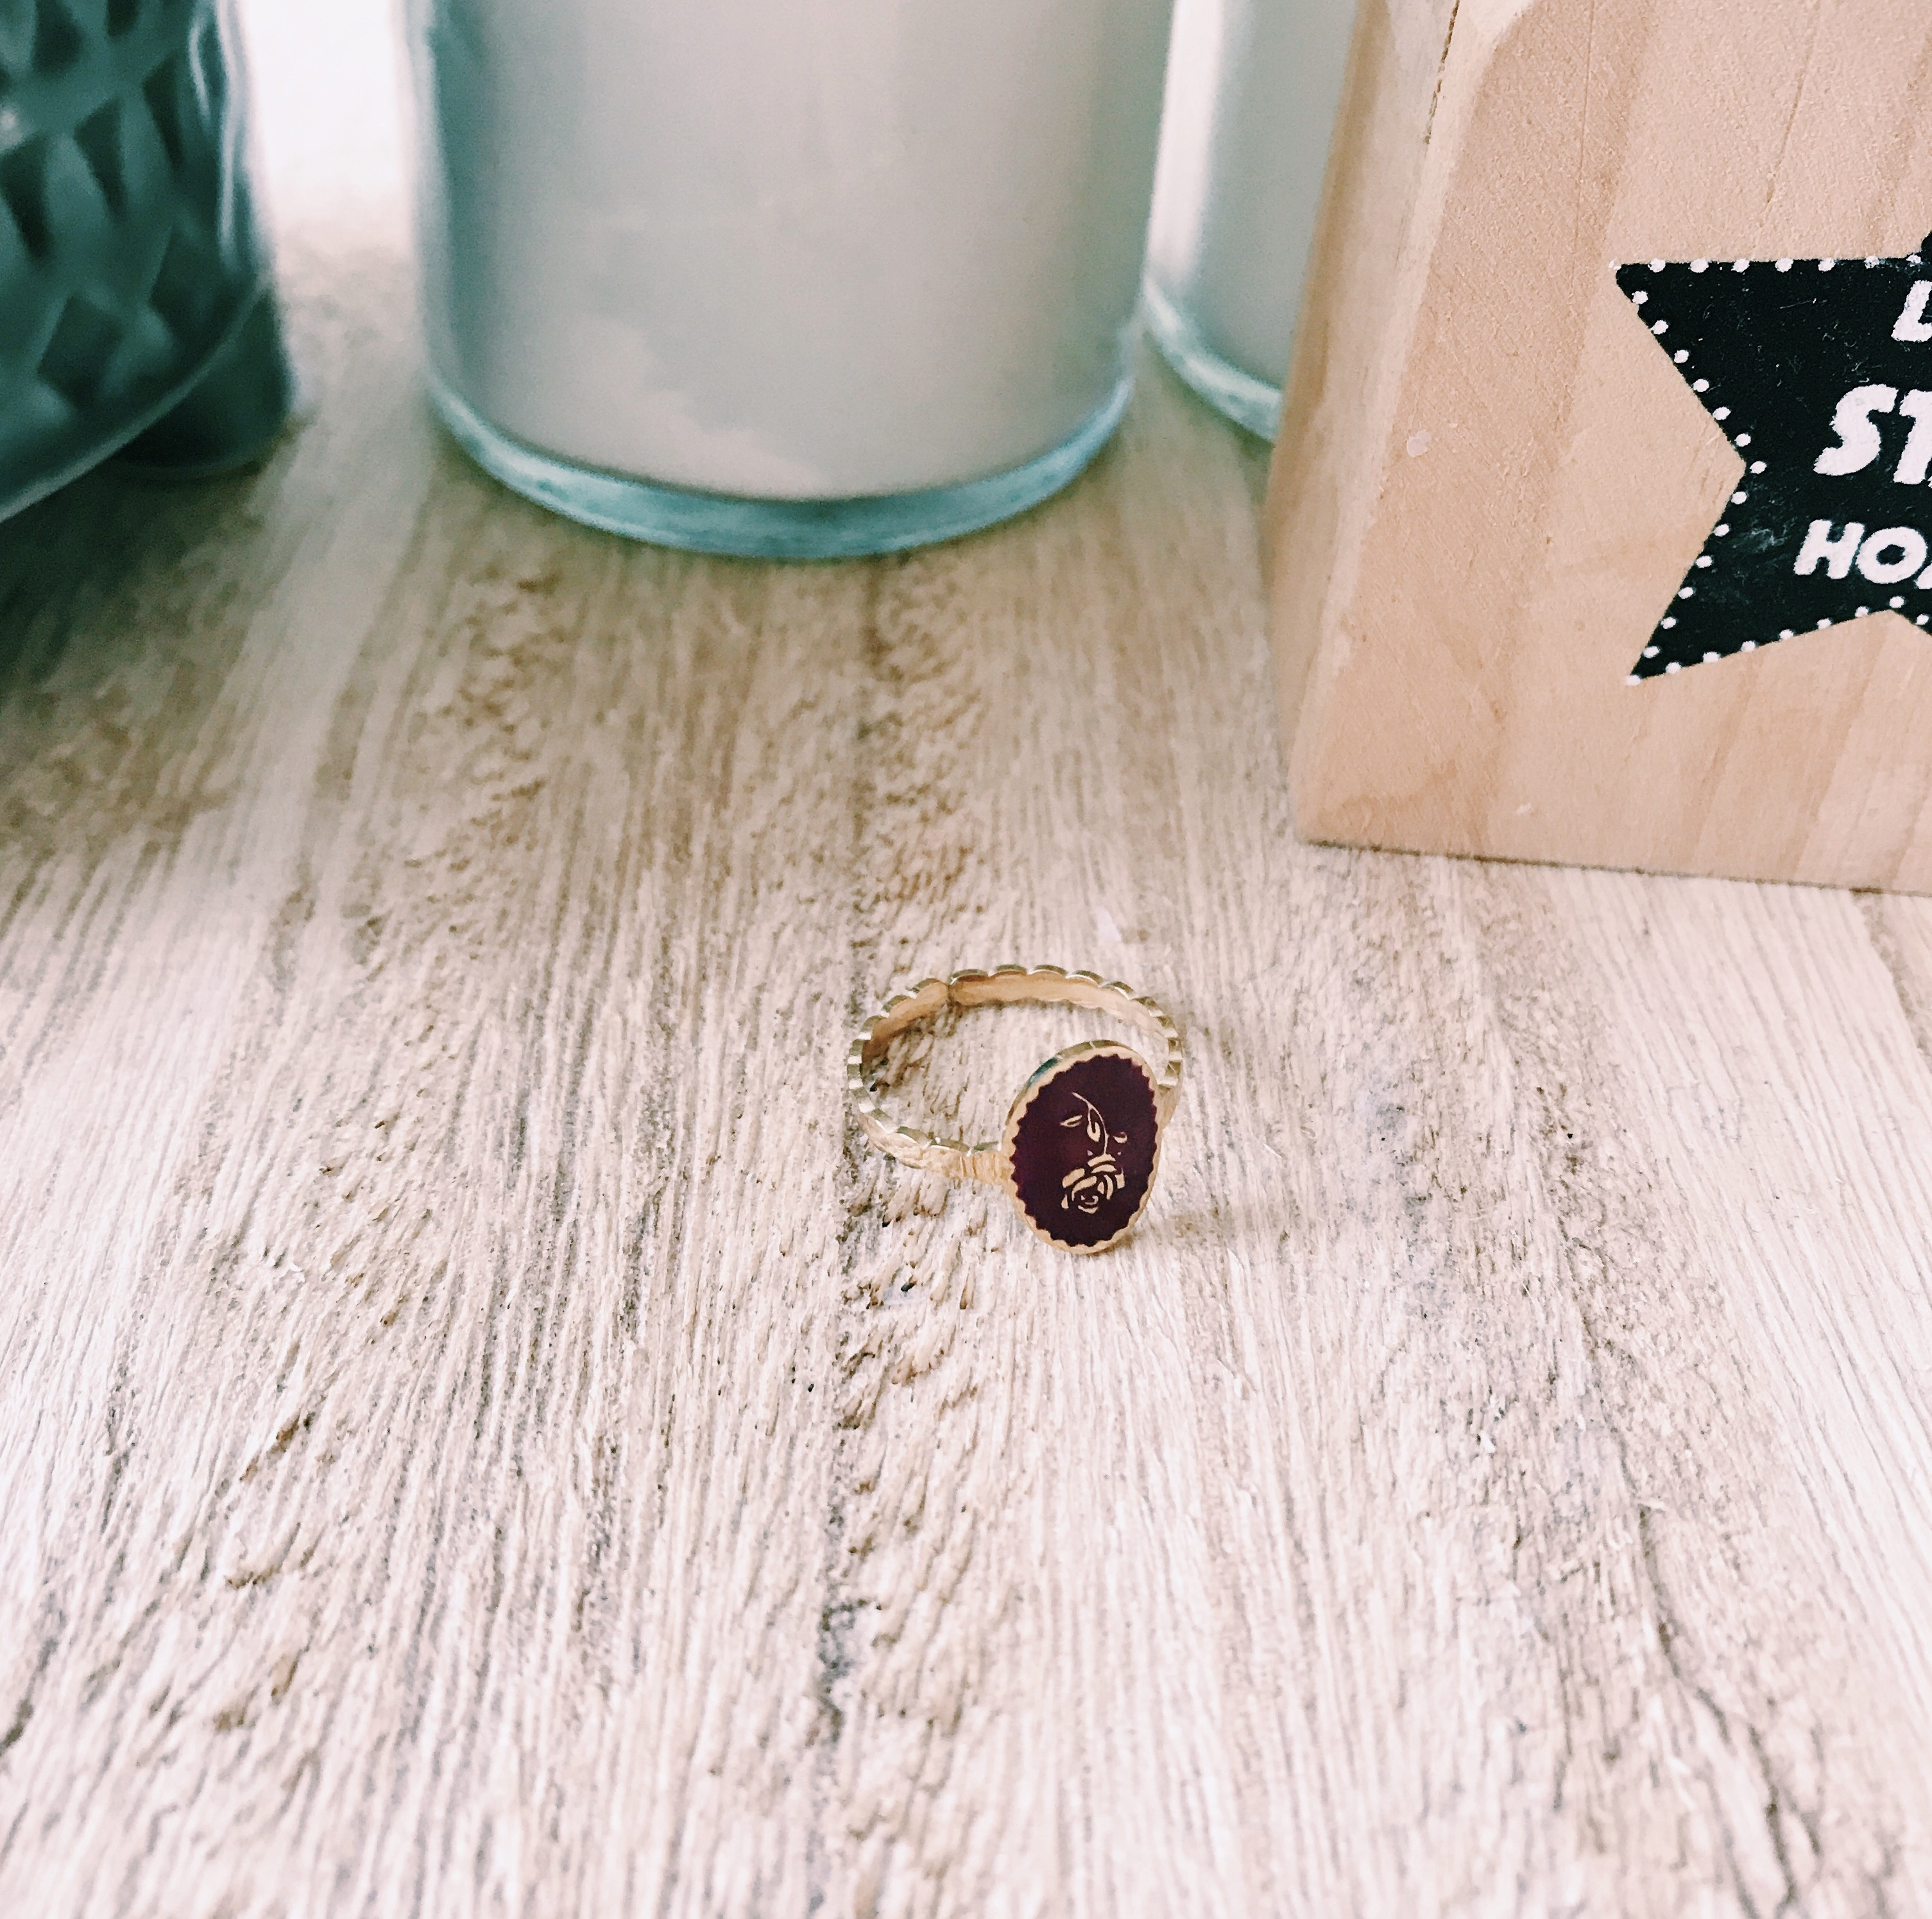 Shoppen voor mama shoplog my jewellery kleding fashion outfits mamablog mamablogger blog blogger lifestyle laviedemama.nl